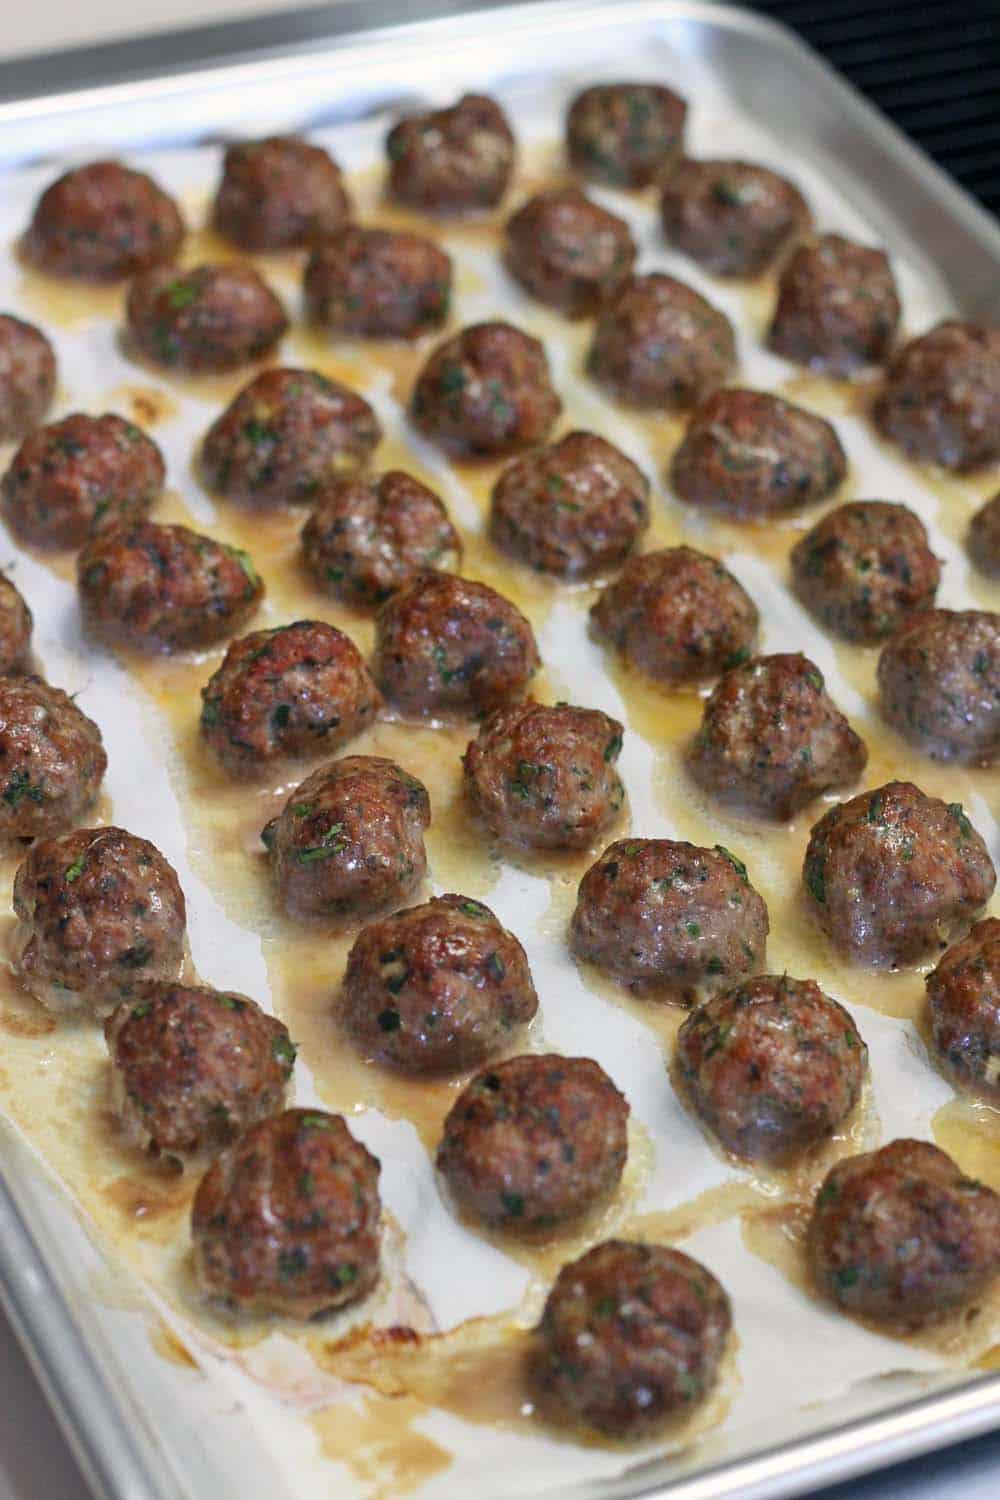 This Paleo/Whole30 baked version of Greek Meatballs (Keftedes) are paired with a super easy Romesco Sauce. The PERFECT make-ahead appetizer for your next party!